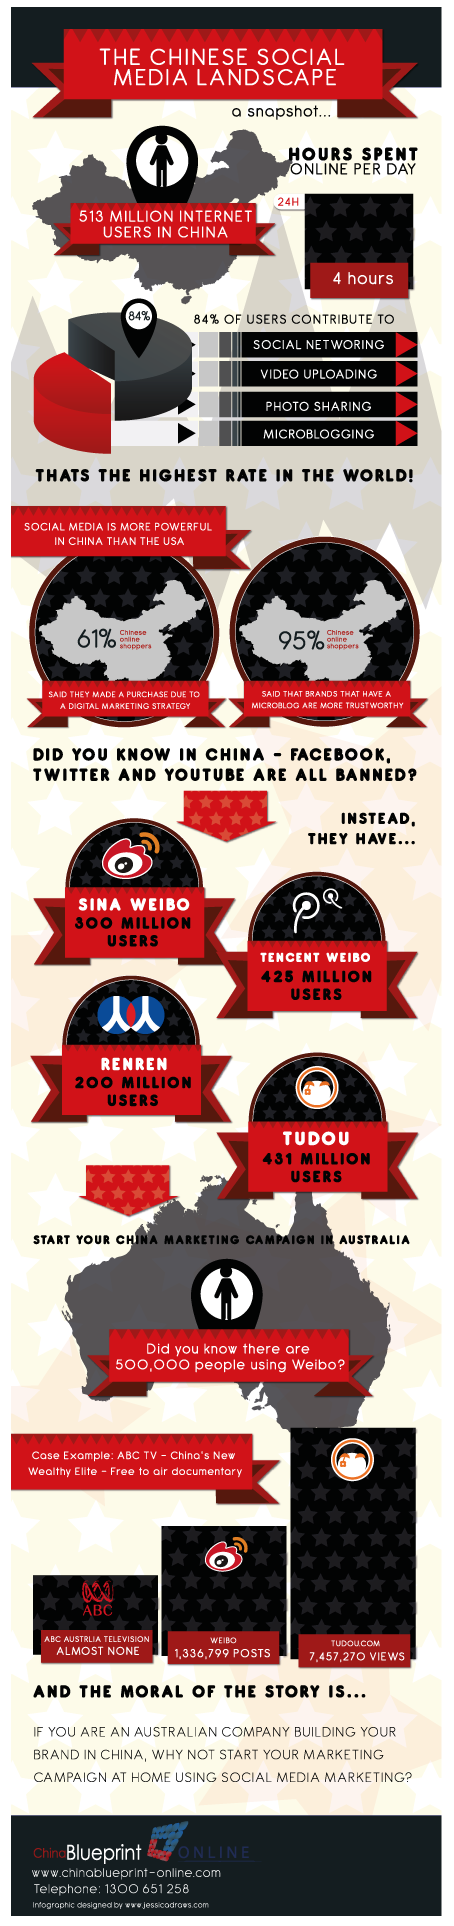 The Chinese Social Media Landscape